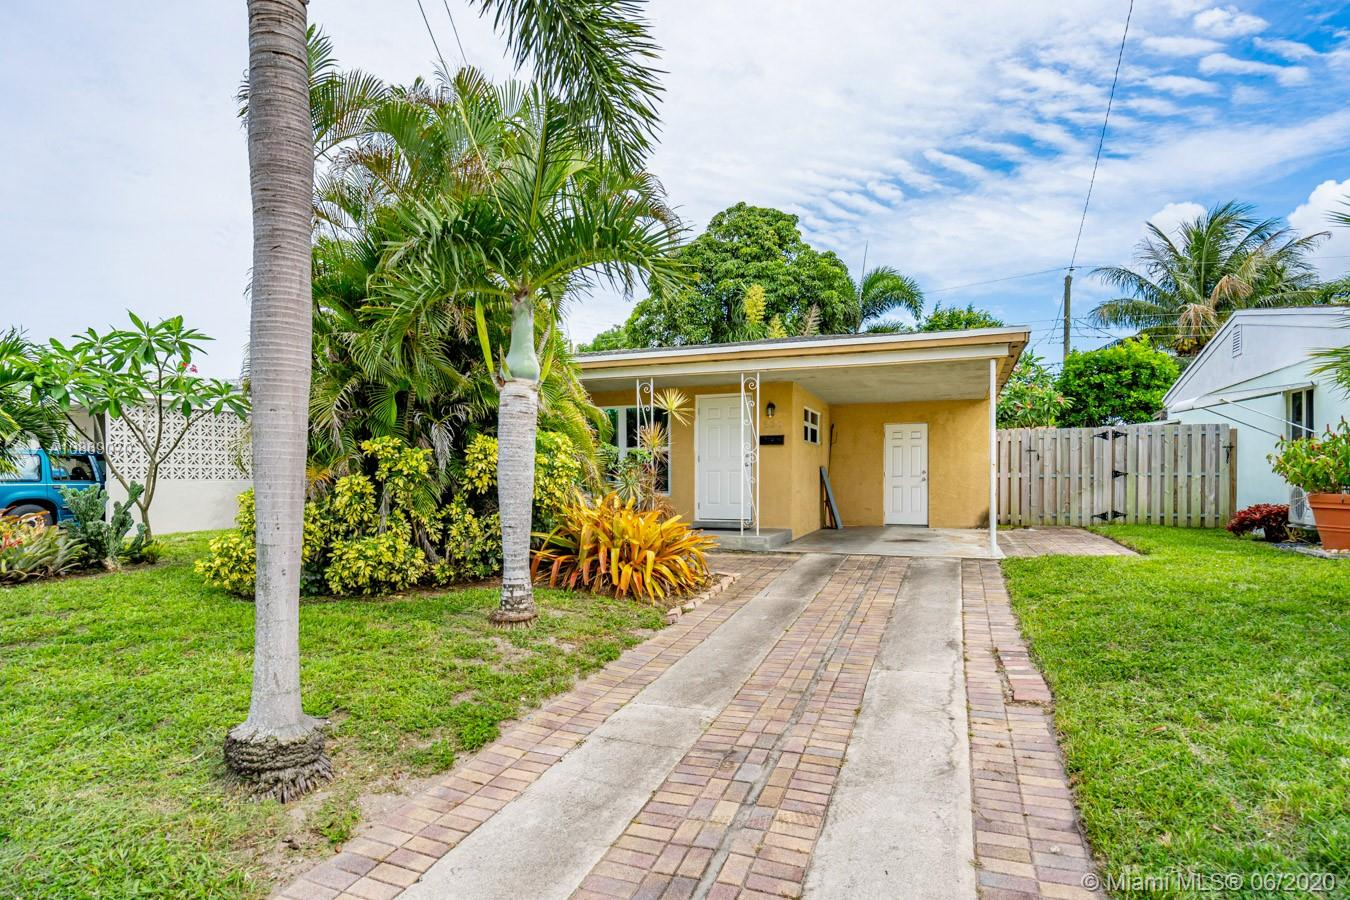 Charming 2/1 in Ft. Lauderdale is ready to move in! Property features hurricane impact windows, ceramic tile and wood floors, updated kitchen with new appliances, fenced yard, carport and so much more. Make this your home or investment today!